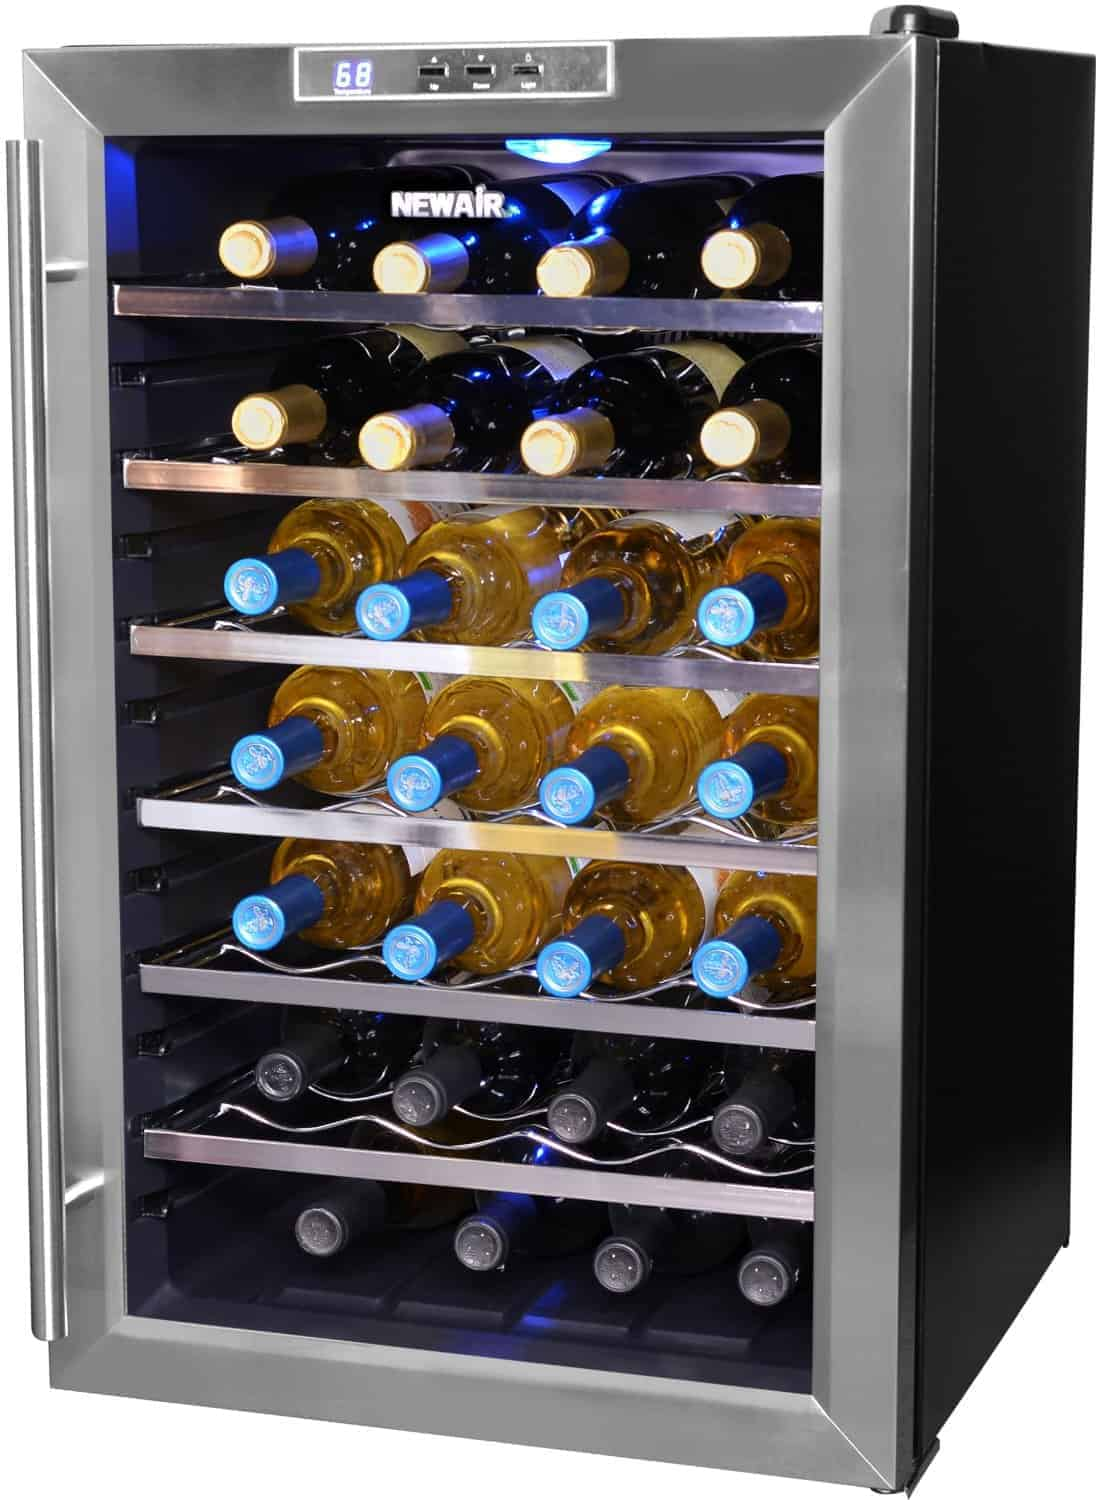 Best wine cooler top reviews and picks for 2017 Wine cooler brands